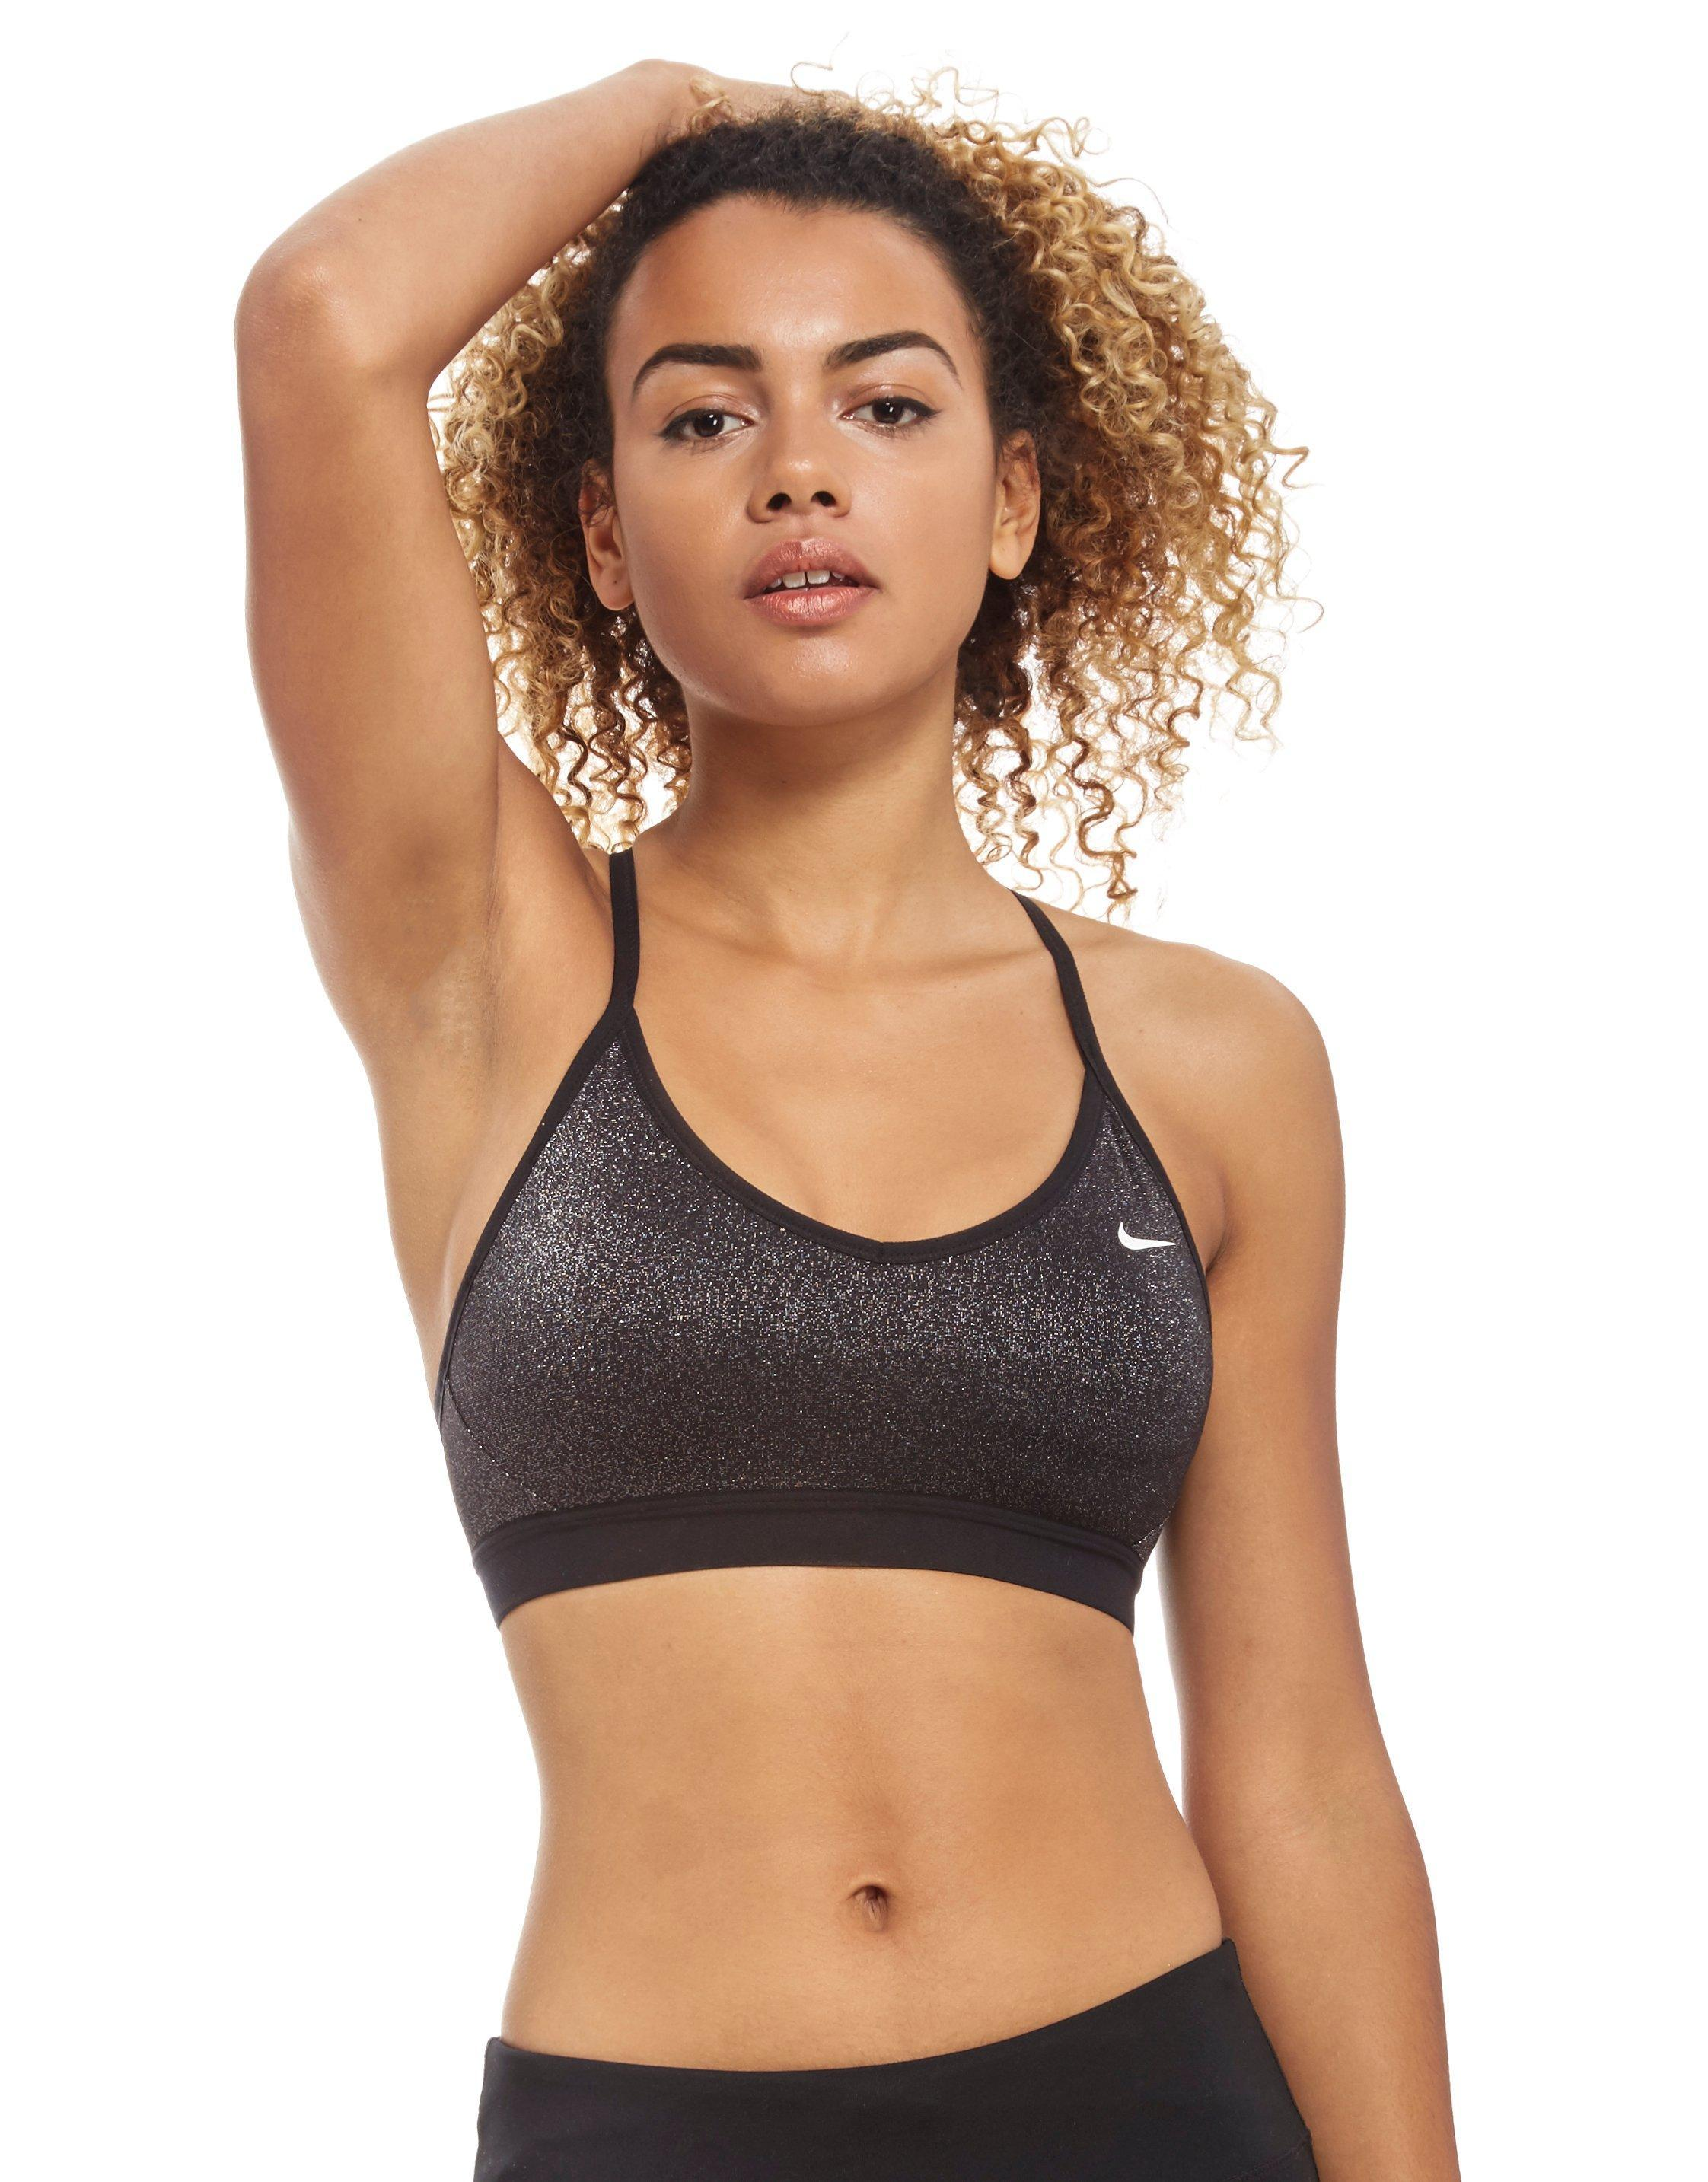 52c0c89df6bbf Lyst - Nike Indy Sparkle Sports Bra in Black